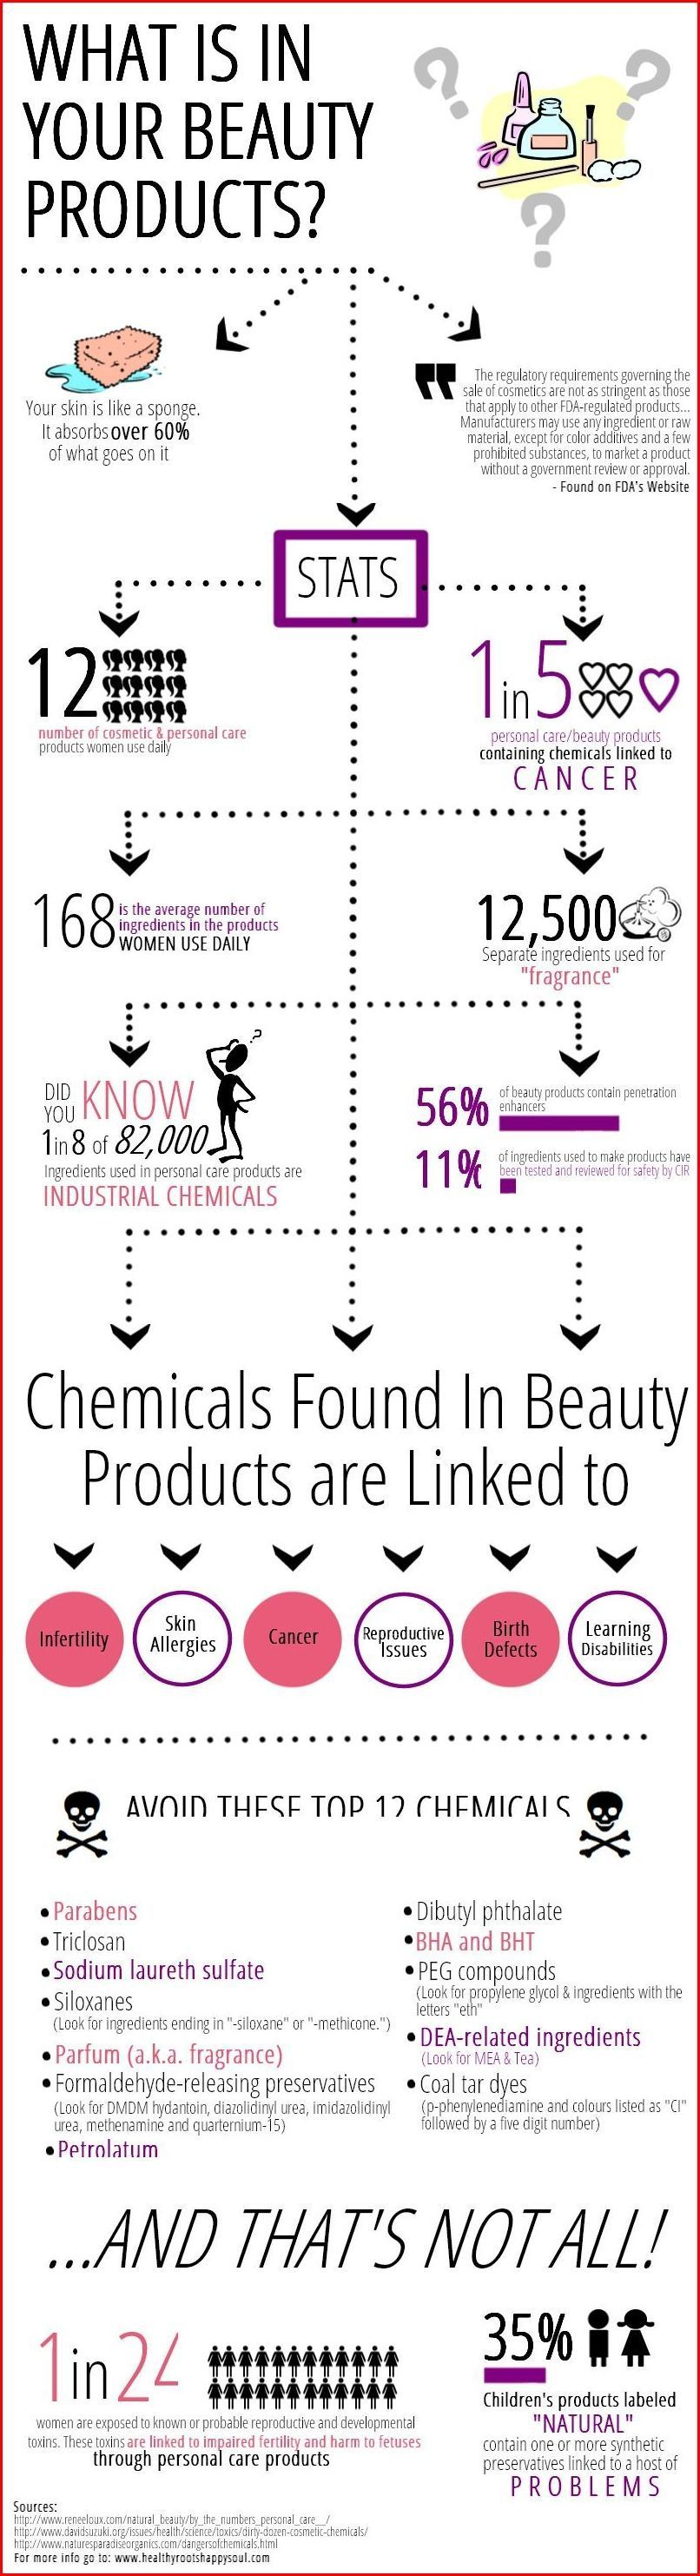 Skin Care Products For Acne. Achieve a perfect complexion by using higher qualit... , Skin Care Products For Acne. Achieve a perfect complexion by using higher quality beauty and makeup products for her as well as for him. Uncover the best and newest brands and lotions such as Kiehl's, Clarins and alot more designed to leave your own skin #organicmakeupinfographic Skin Care Products For Acne....